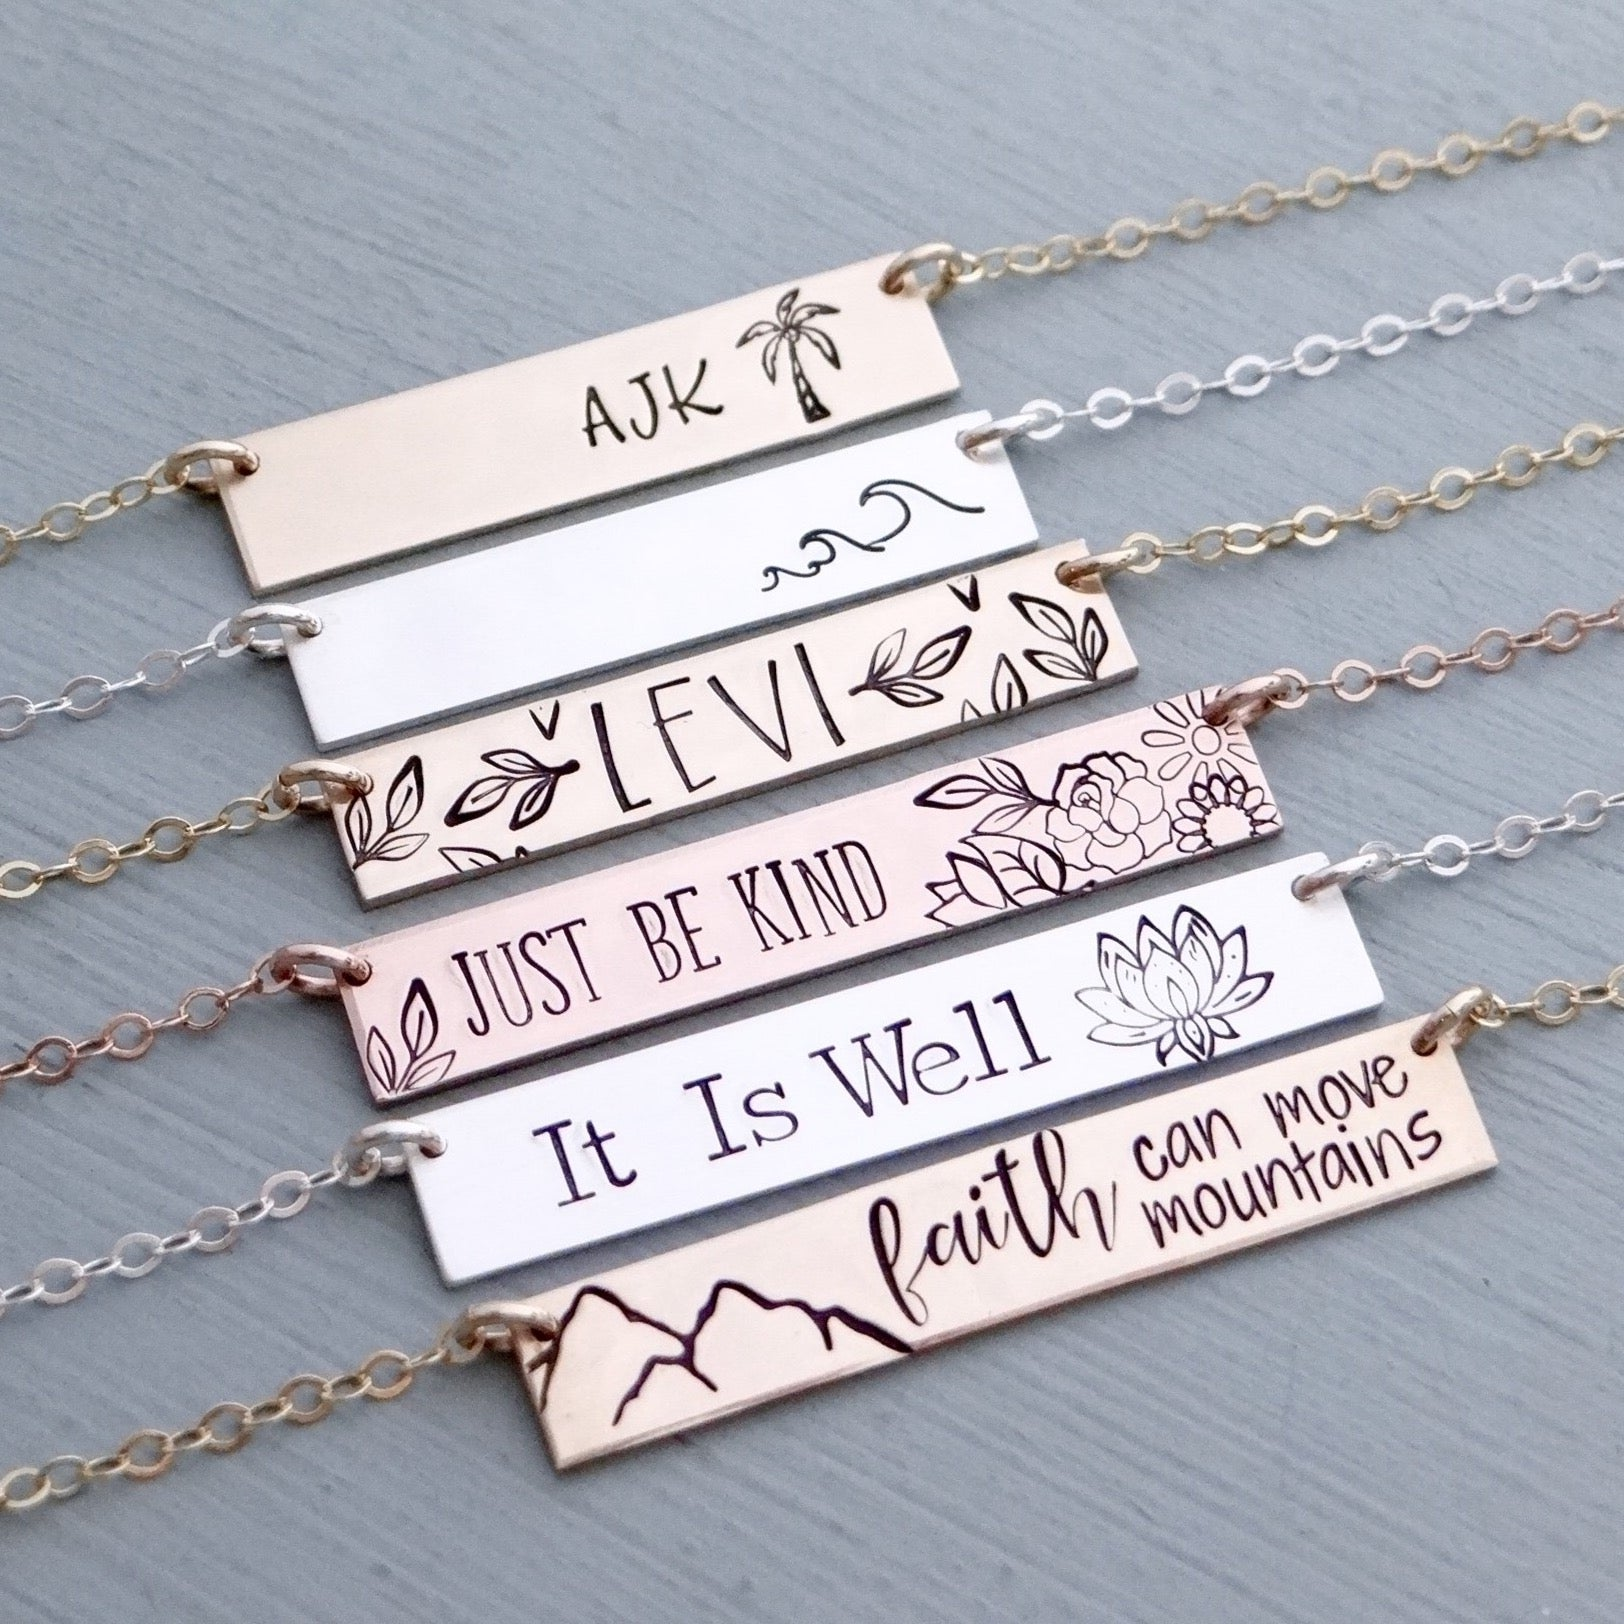 Create Your Own (Standard Size) Personalized Bar Necklace